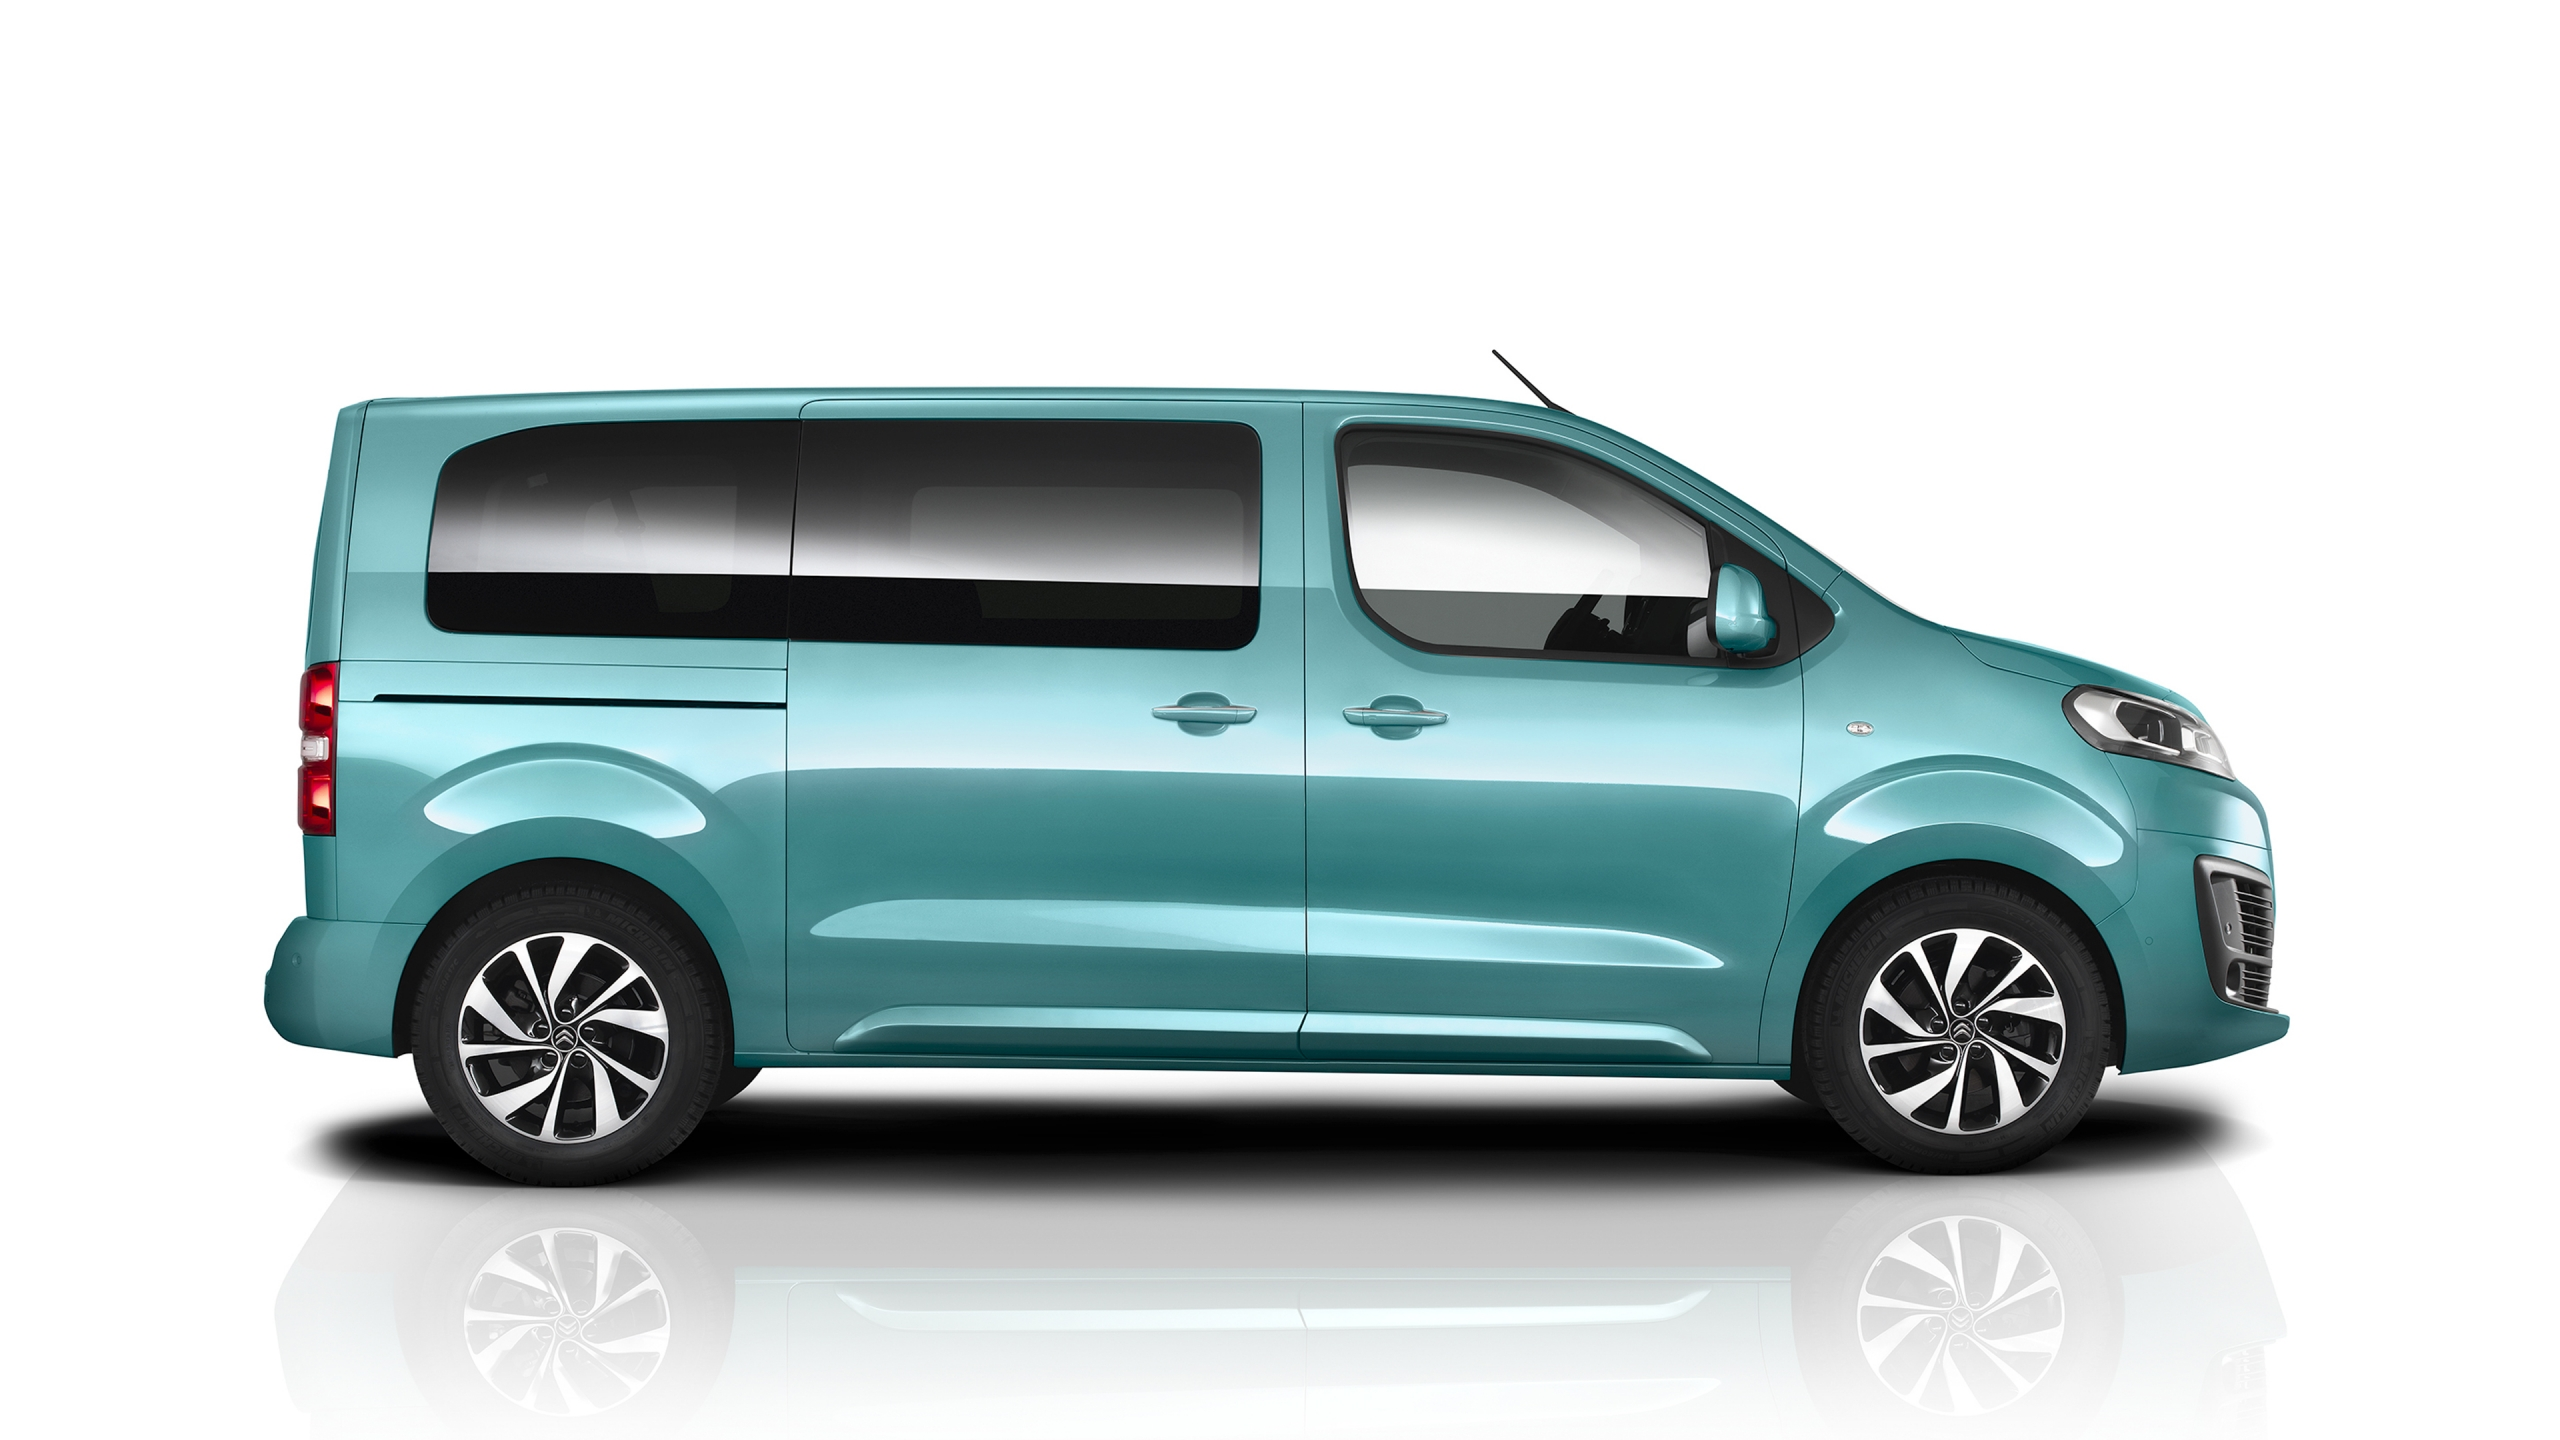 Citroen SpaceTourer 2016 - Photo 28 - Taille: 2560x1440